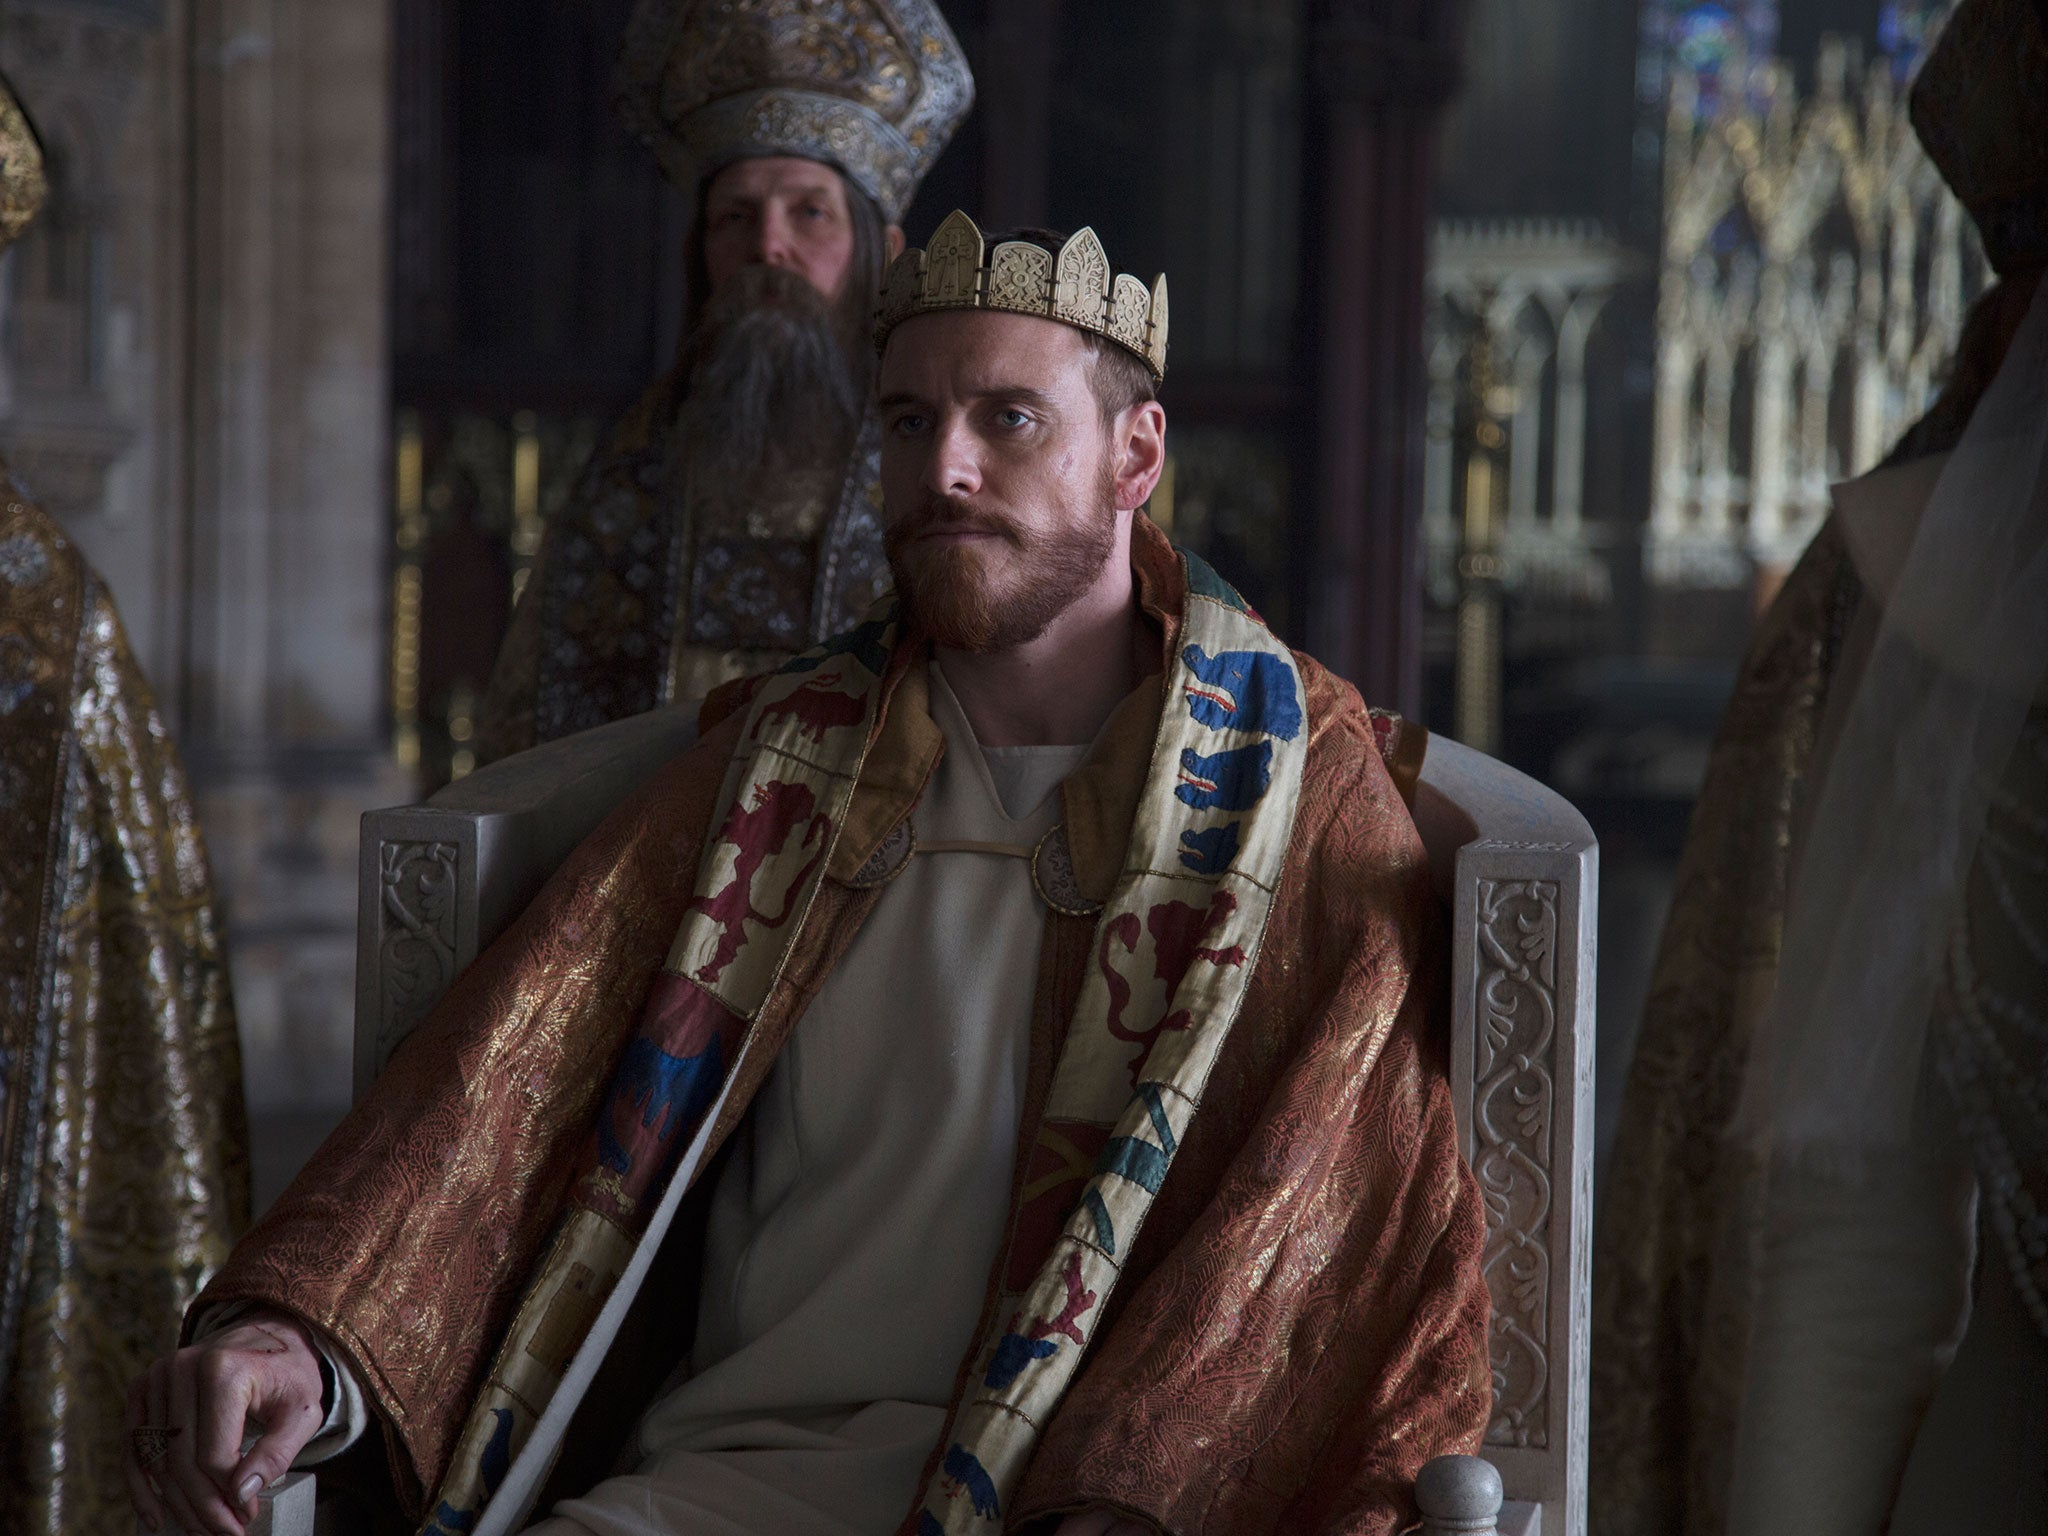 macbeth film review michael fassbender is scowling and mercurial macbeth film review michael fassbender is scowling and mercurial the independent